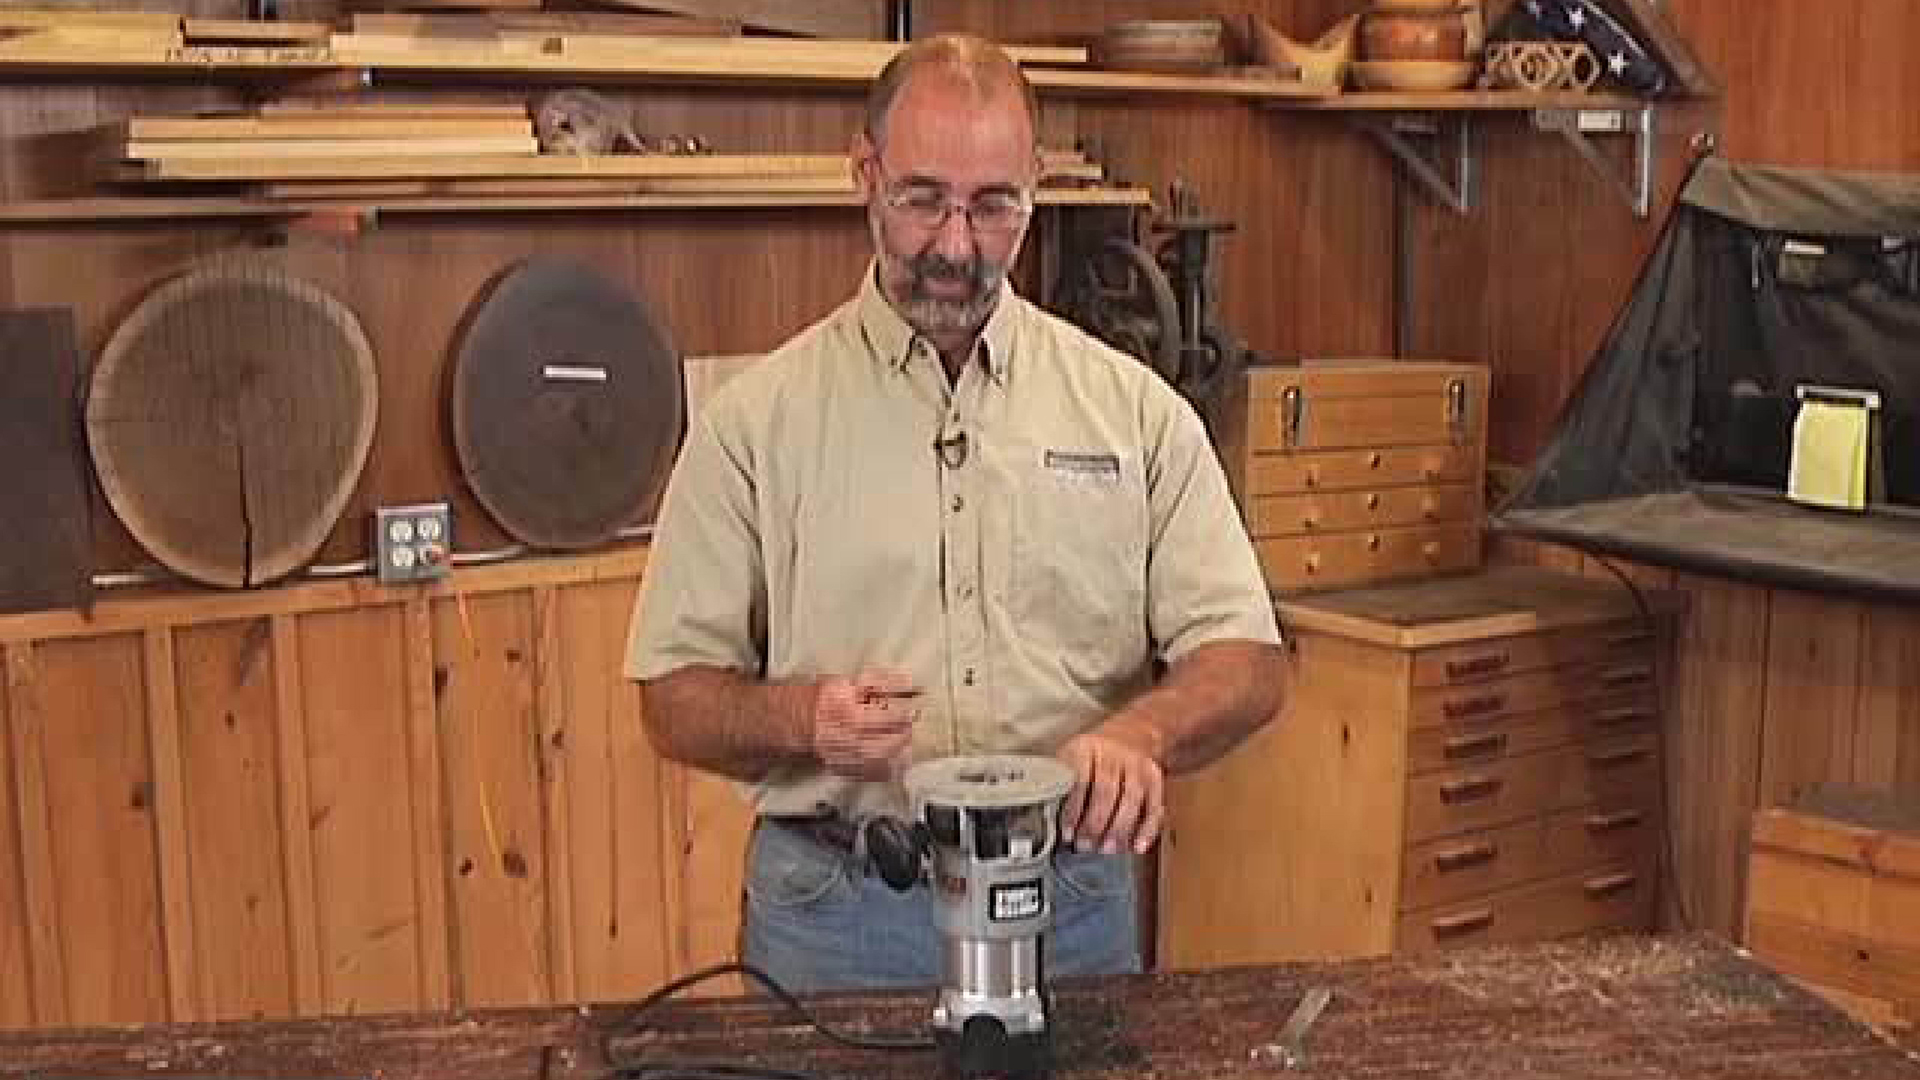 Sharpen Your Skills - How to Install a Router Bit in a Router